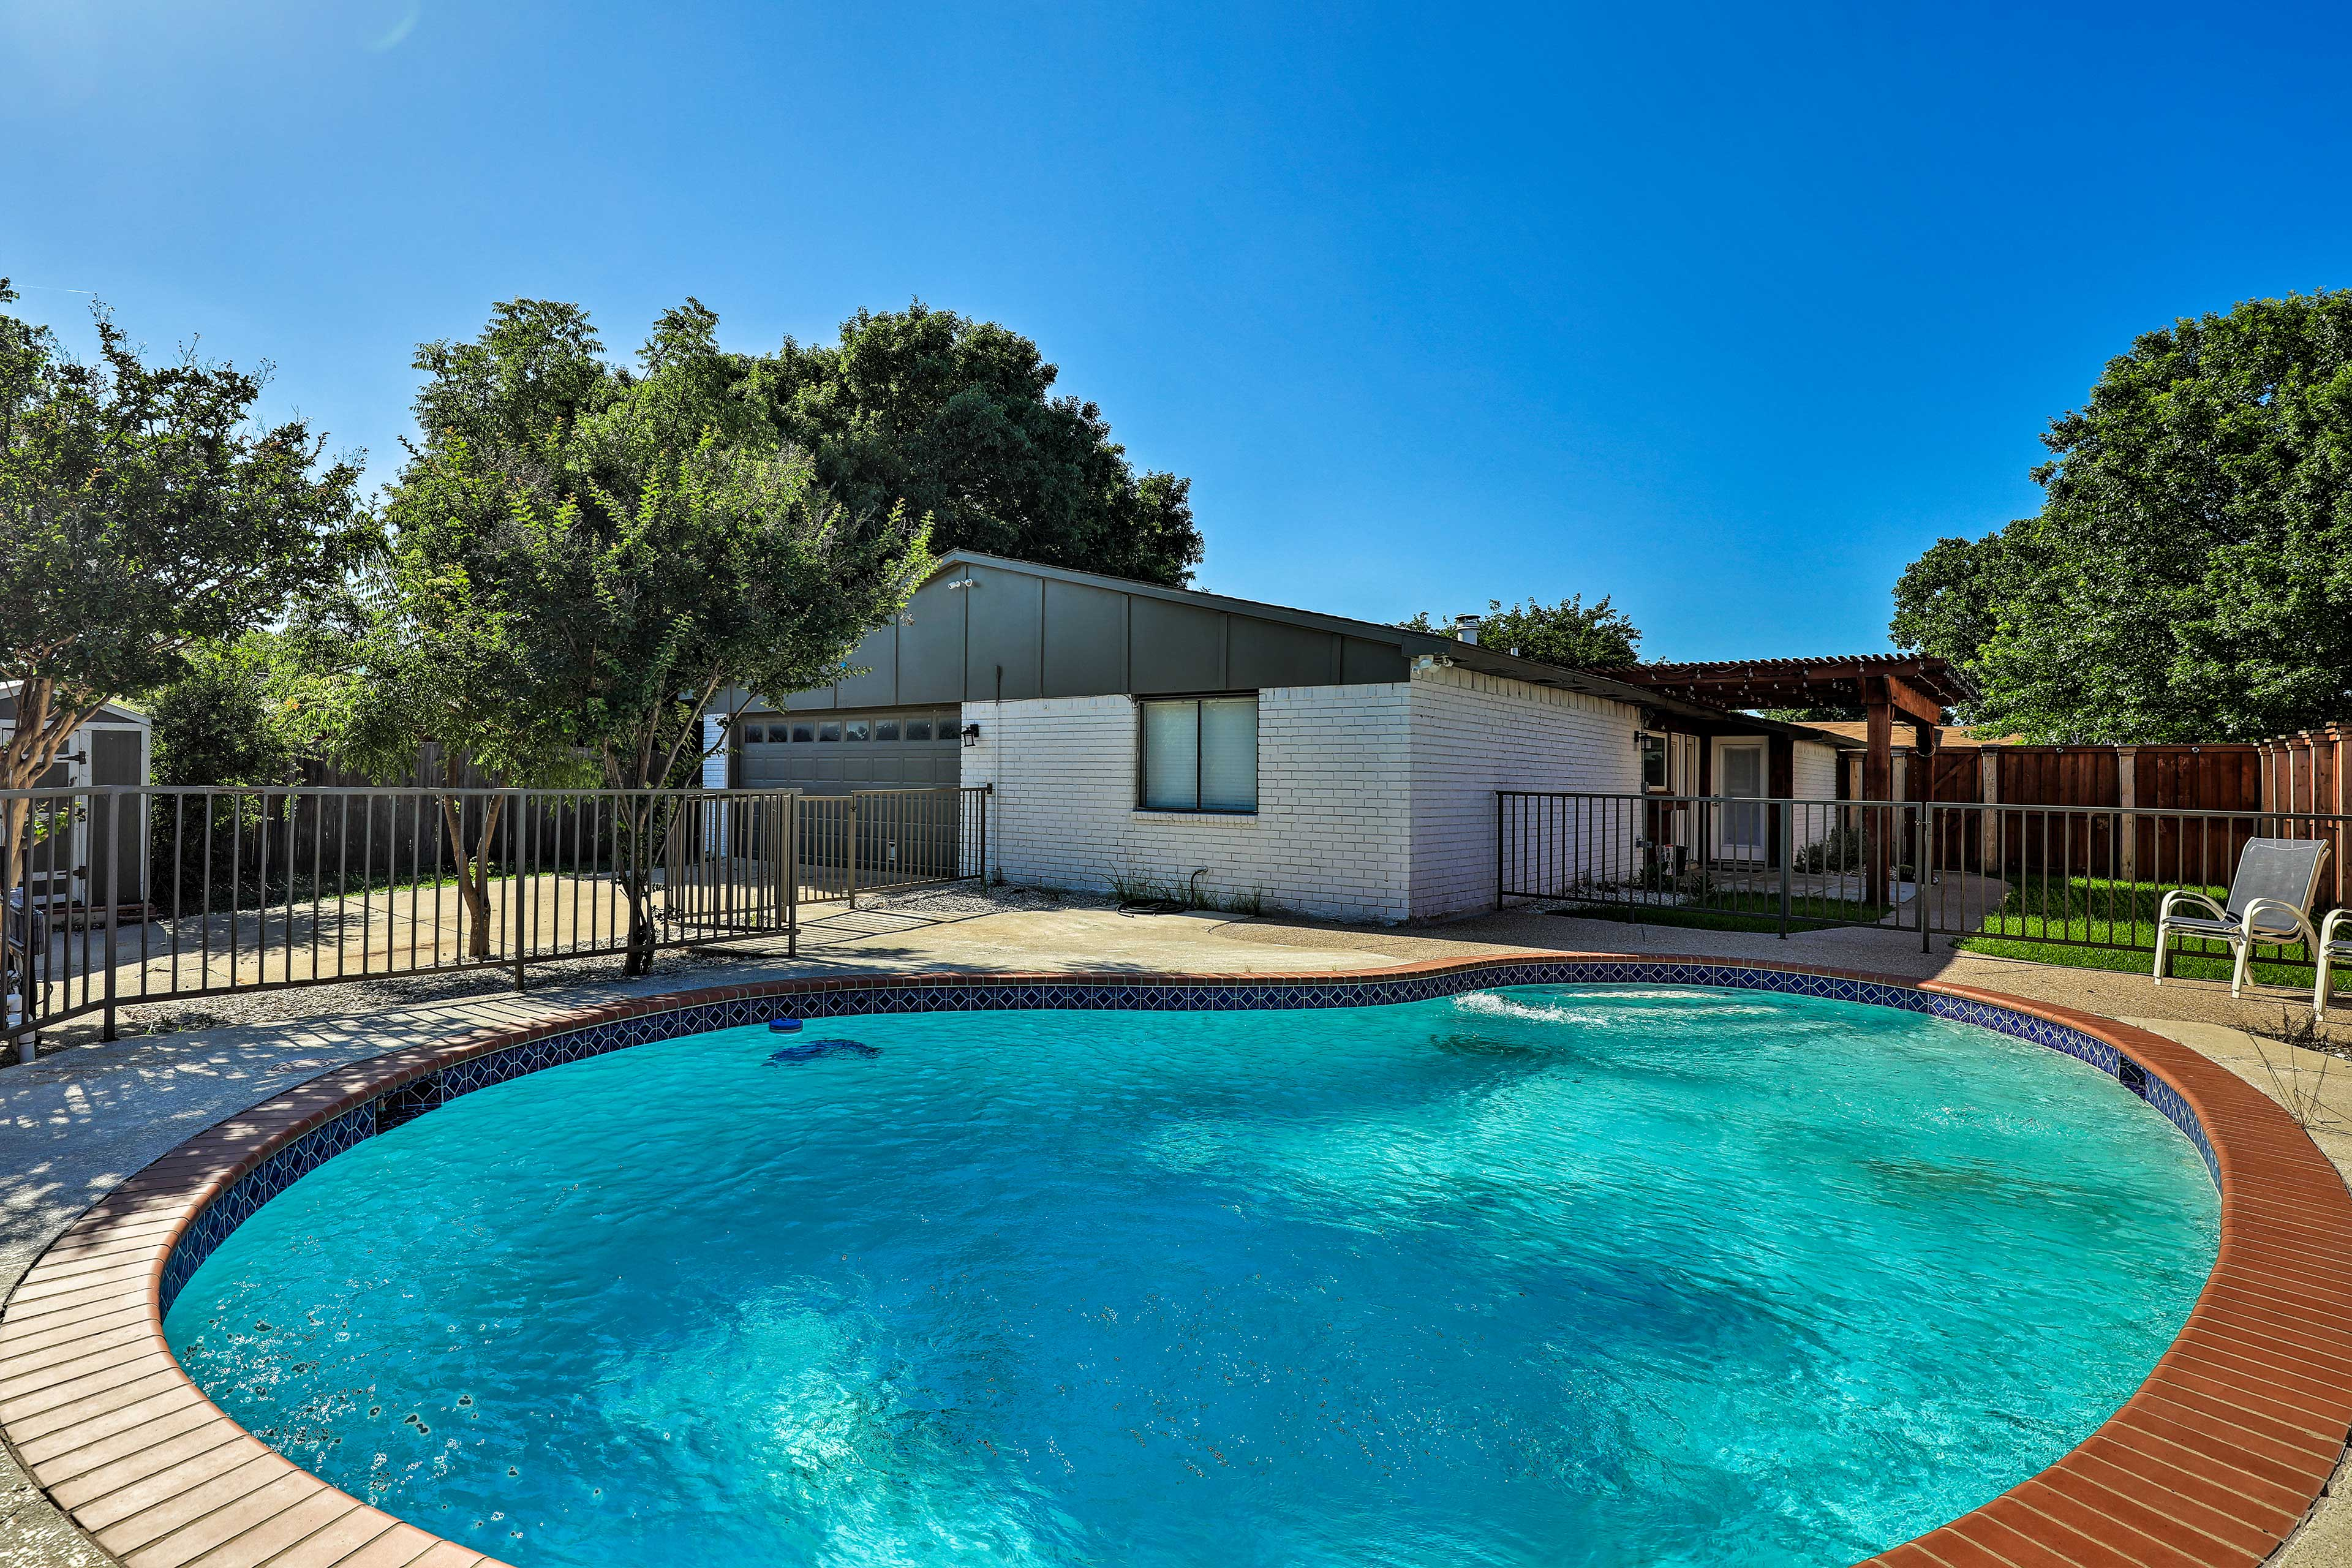 Dive into your next Dallas/Fort Worth metroplex with the private pool.